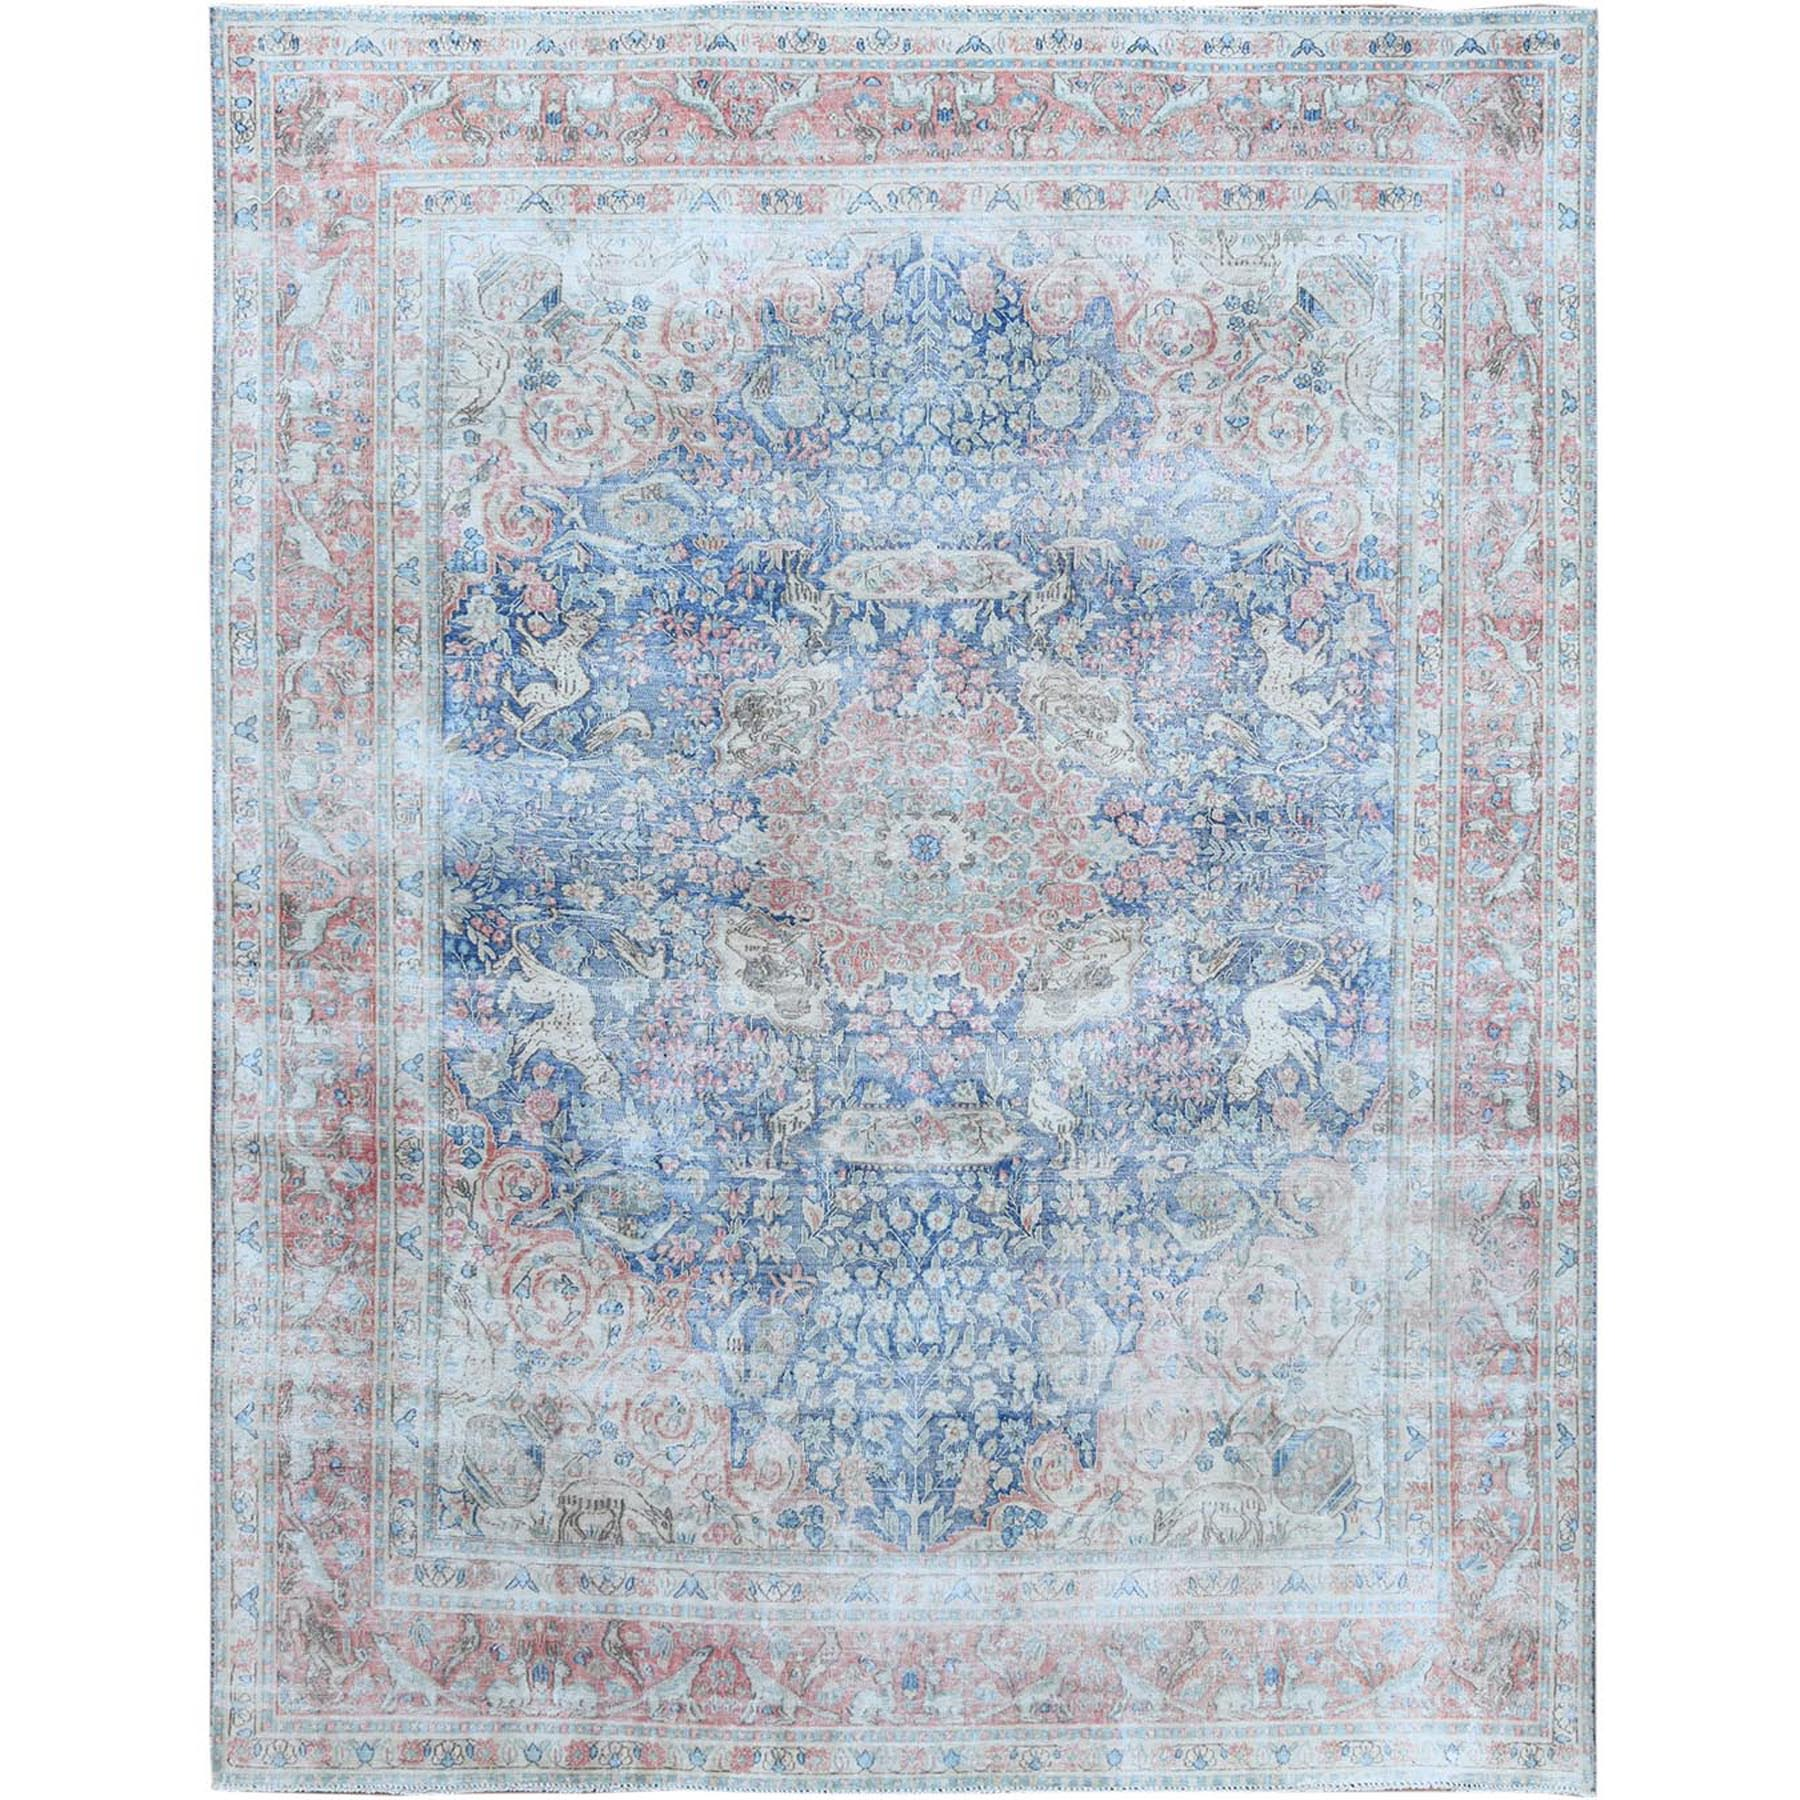 Overdyed & Vintage Rugs LUV543672